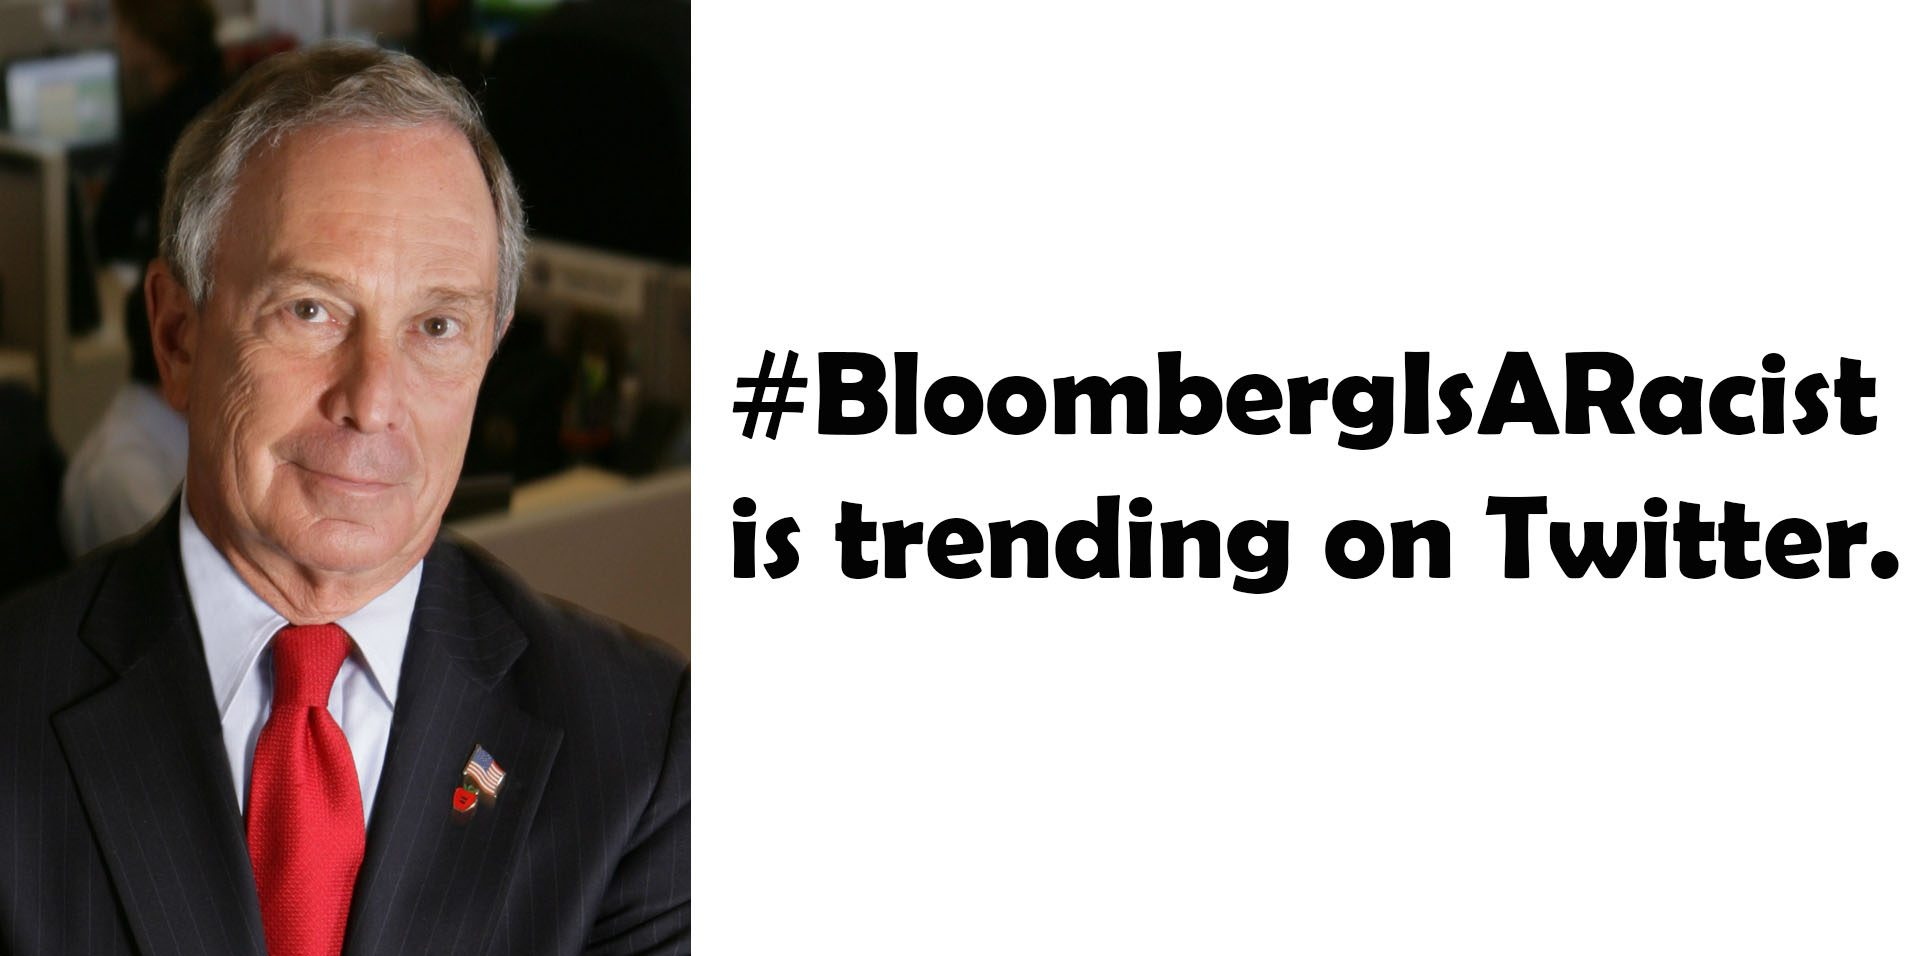 Tuesday, February 11, 2020 - #BloombergIsARacist is trending on Twitter.